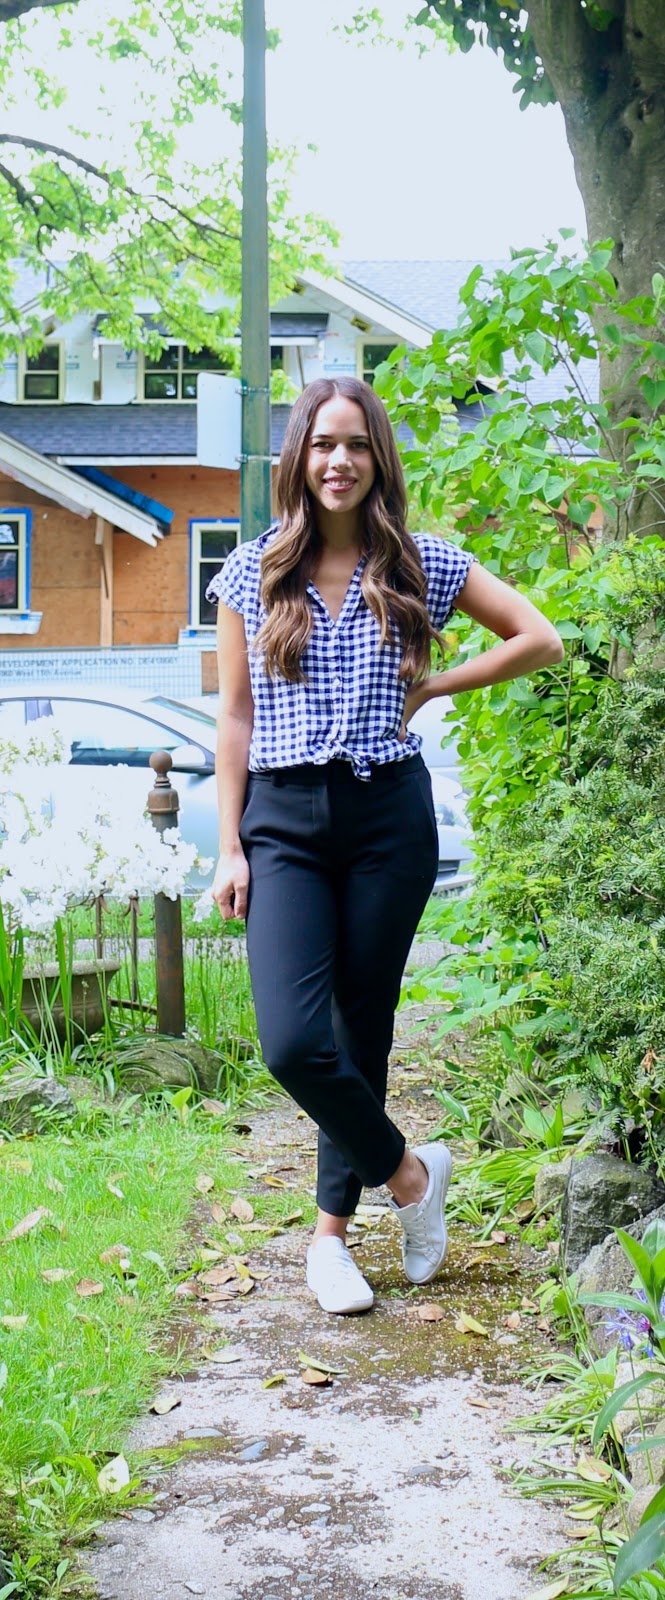 Jules in Flats - Gingham Button Up with White Sneakers (Easy Work from Home Outfit)